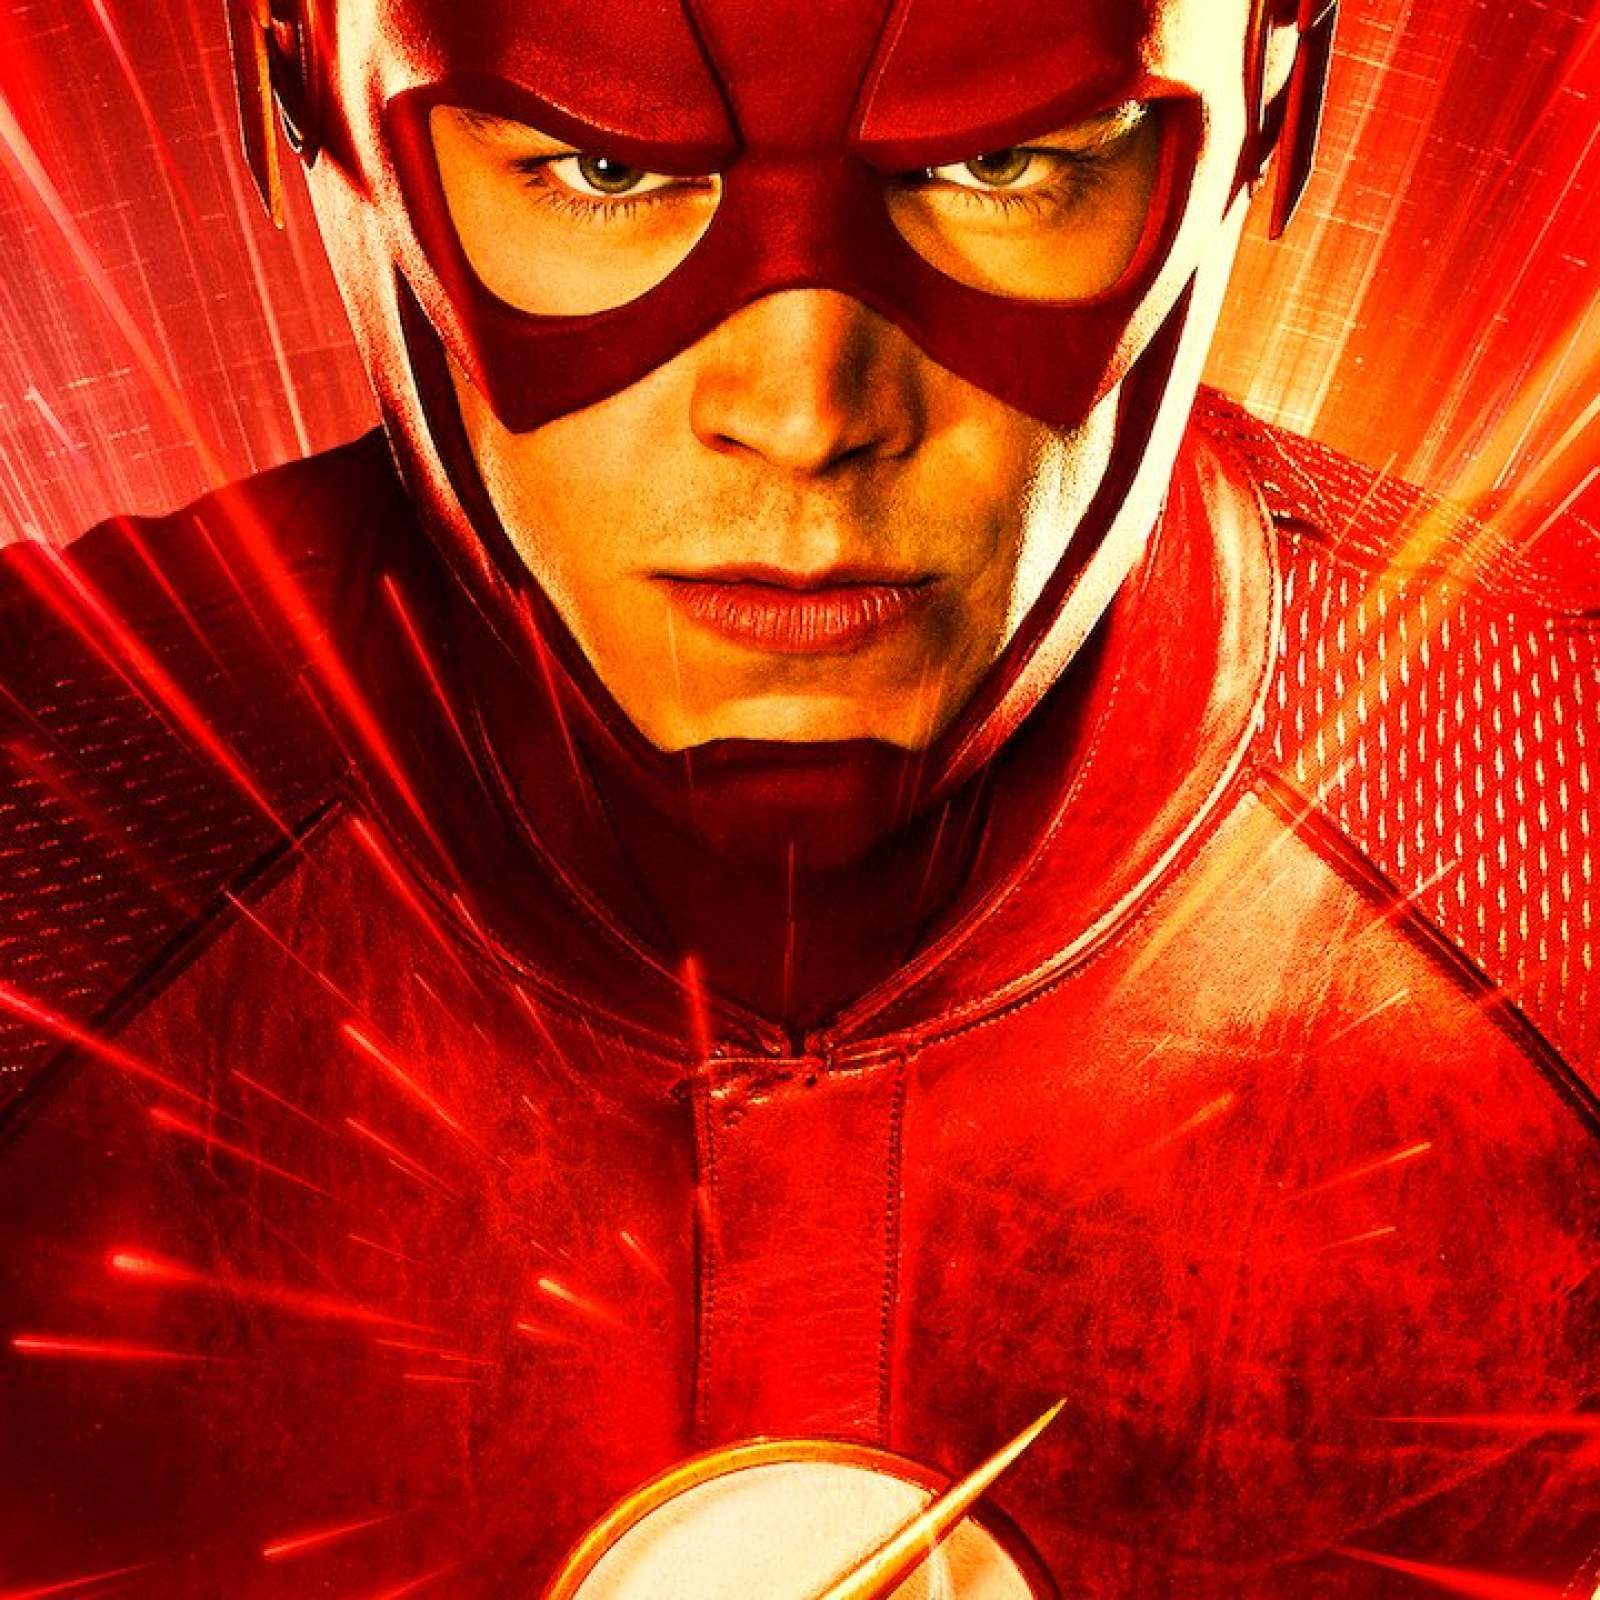 The Flash Season 6 Episode 16 Cw Reveals Release Date For The Next Episode